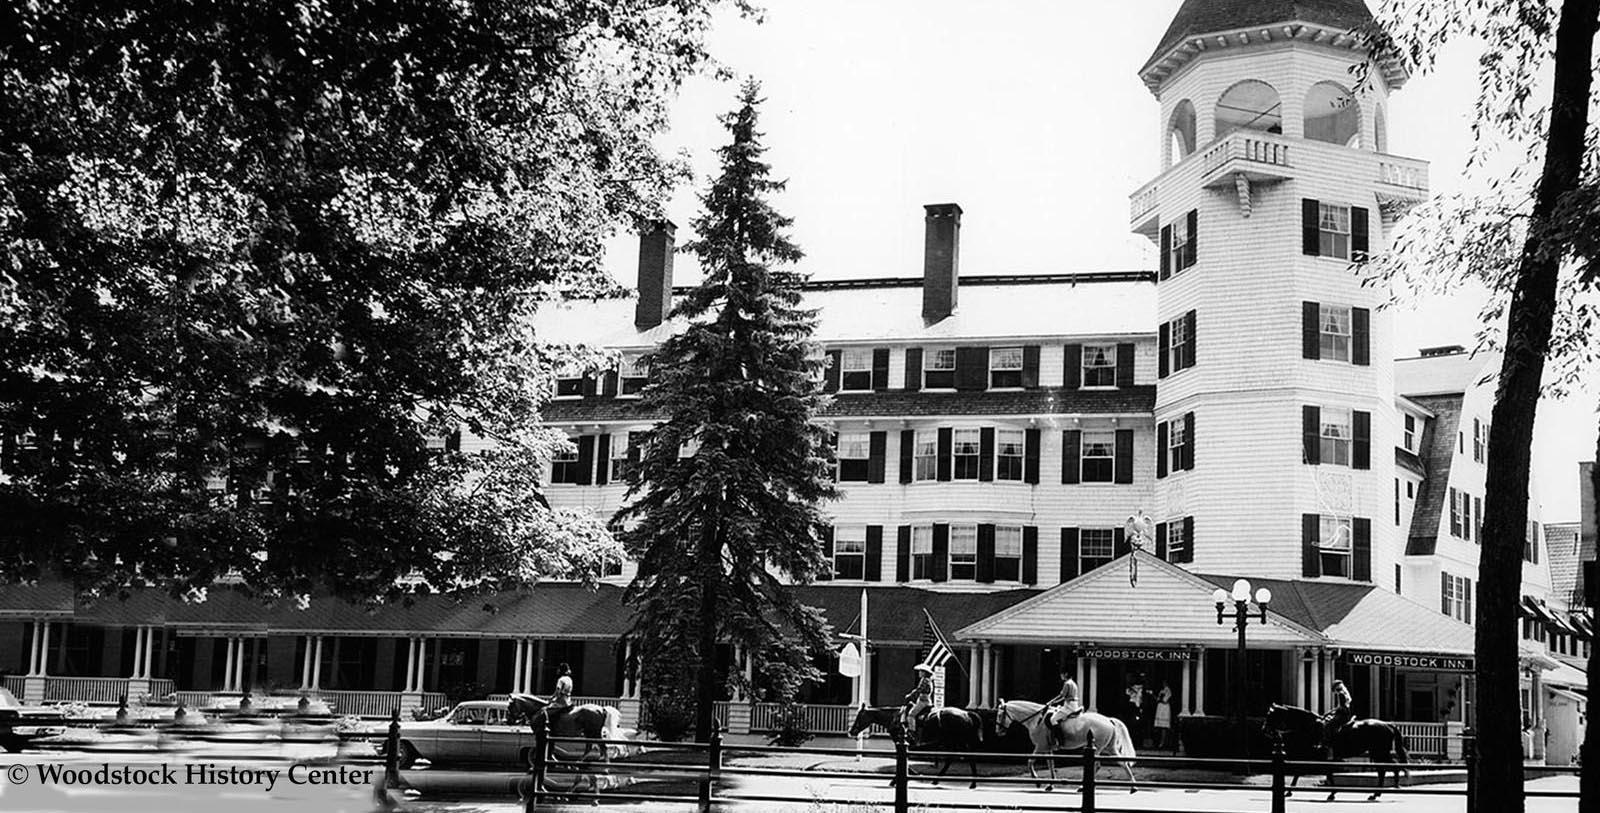 Historic image of Woodstock Inn & Resort, 1793, Member of Historic Hotels of America, in Woodstock, Vermont, Discover